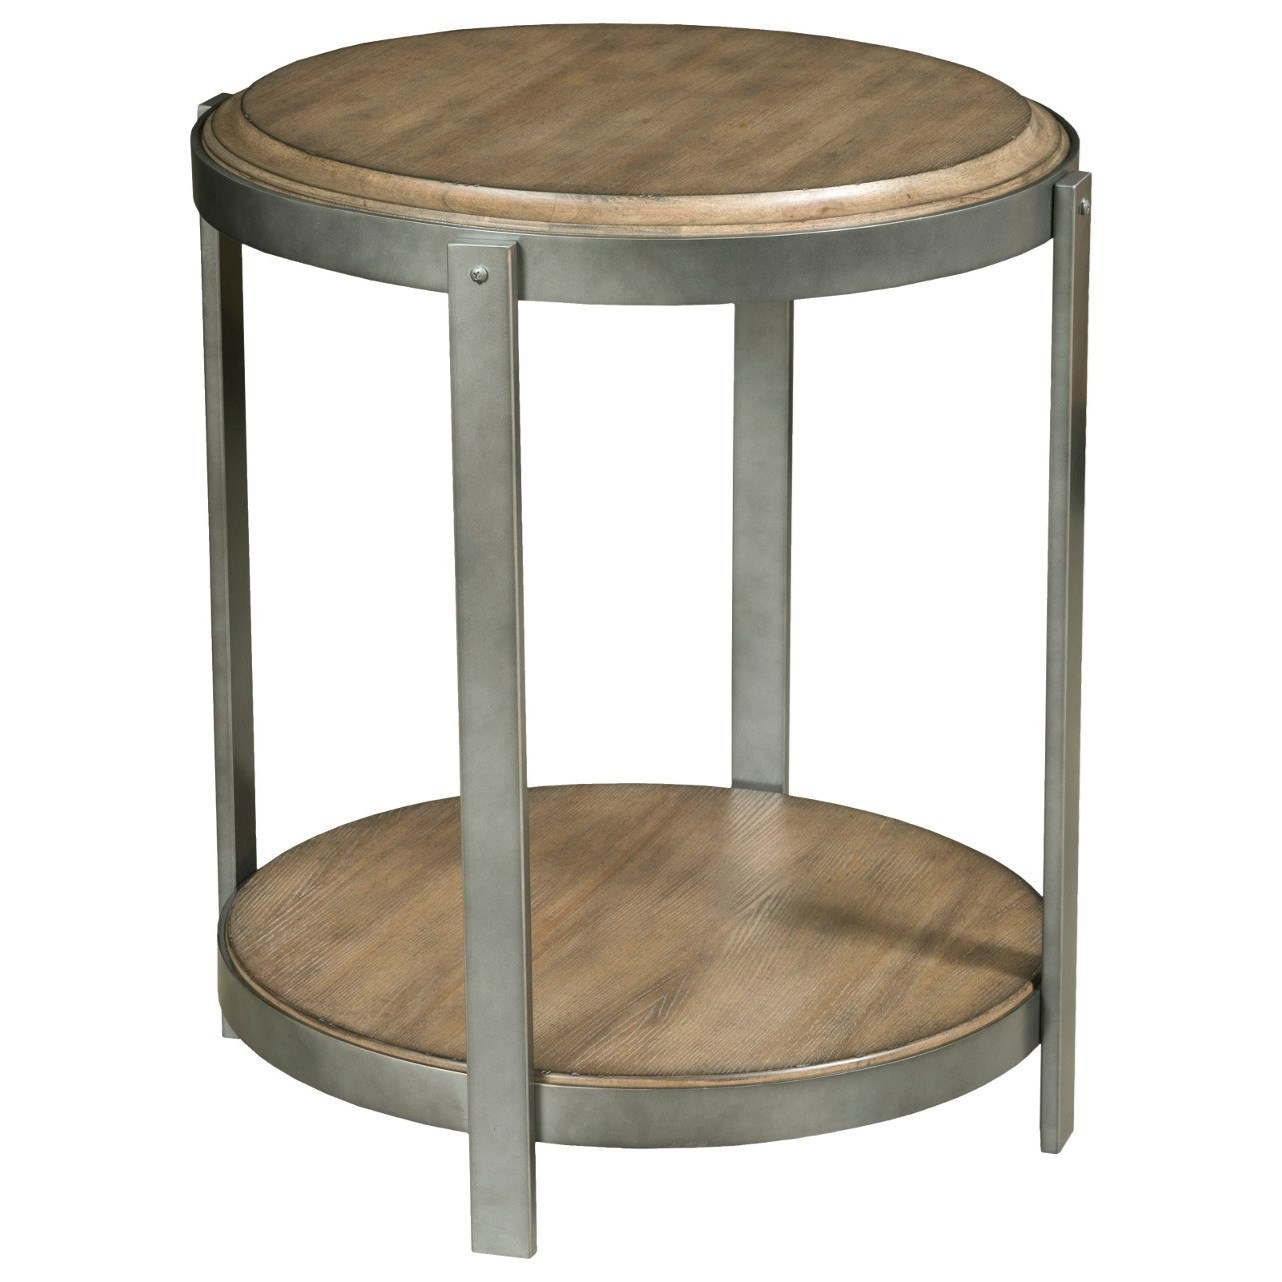 american drew evoke round accent table northeast factory products color metal and wood item number glass with gold legs decorative chairs bistro umbrella reclaimed modern white